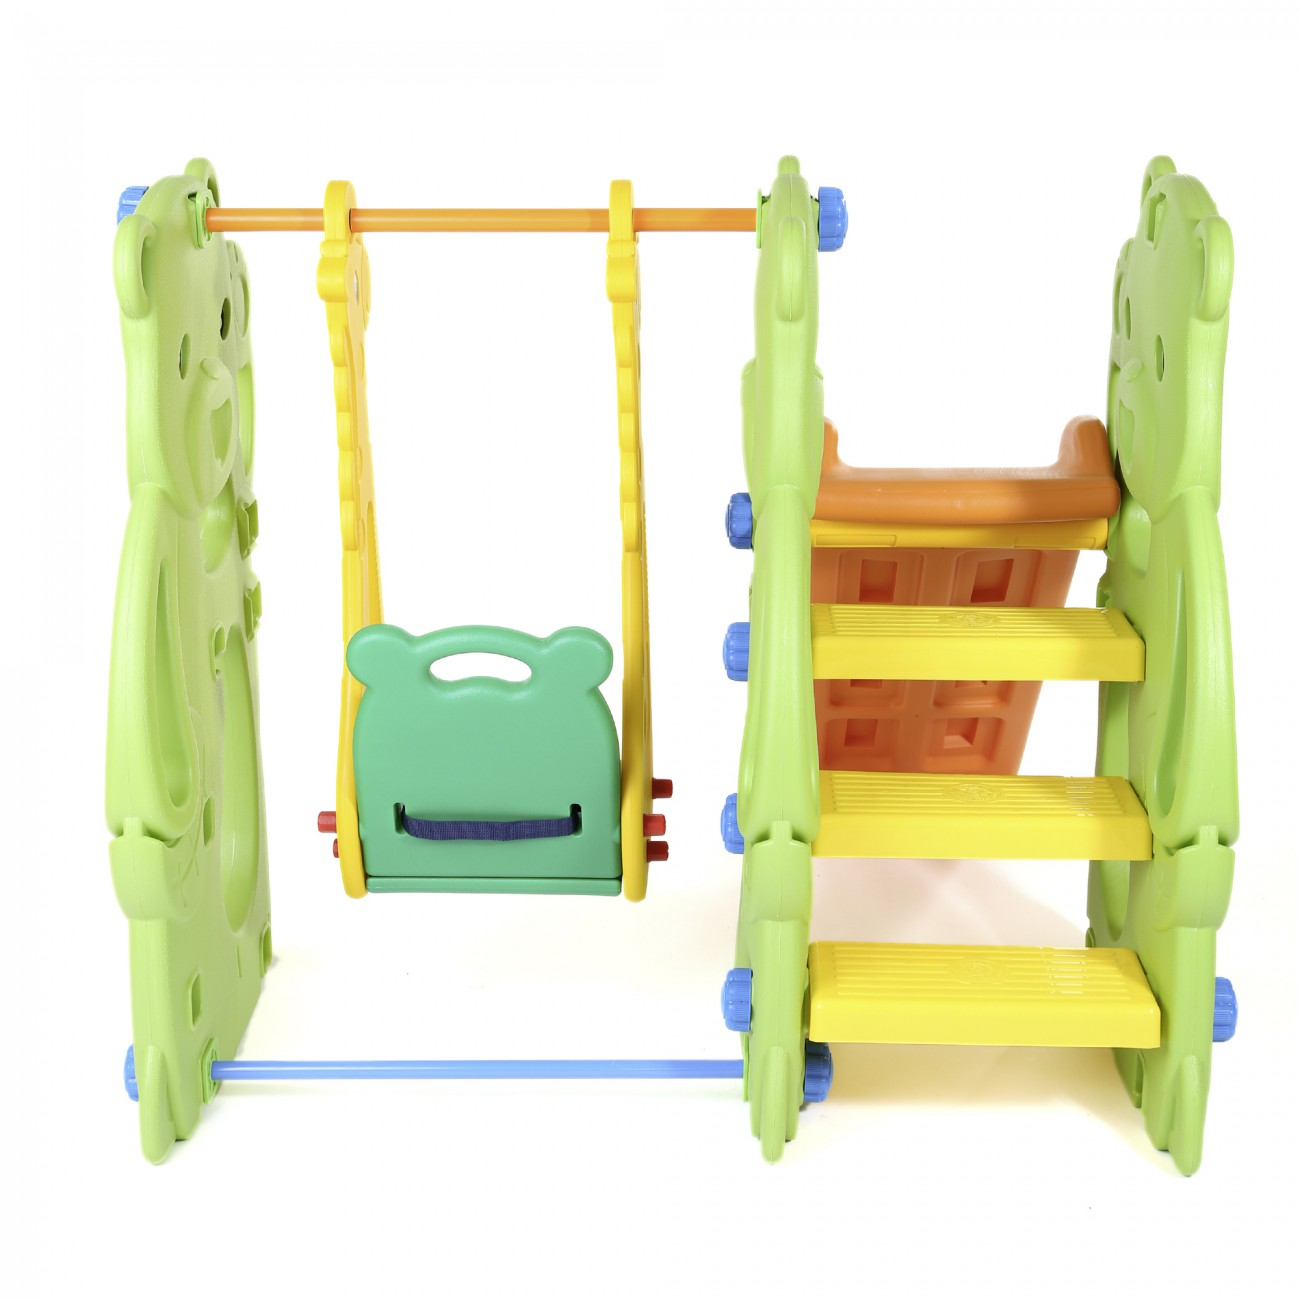 baby vivo spielplatzschaukel spielger st mit rutsche f r indoor outdoor jungle baby kind. Black Bedroom Furniture Sets. Home Design Ideas